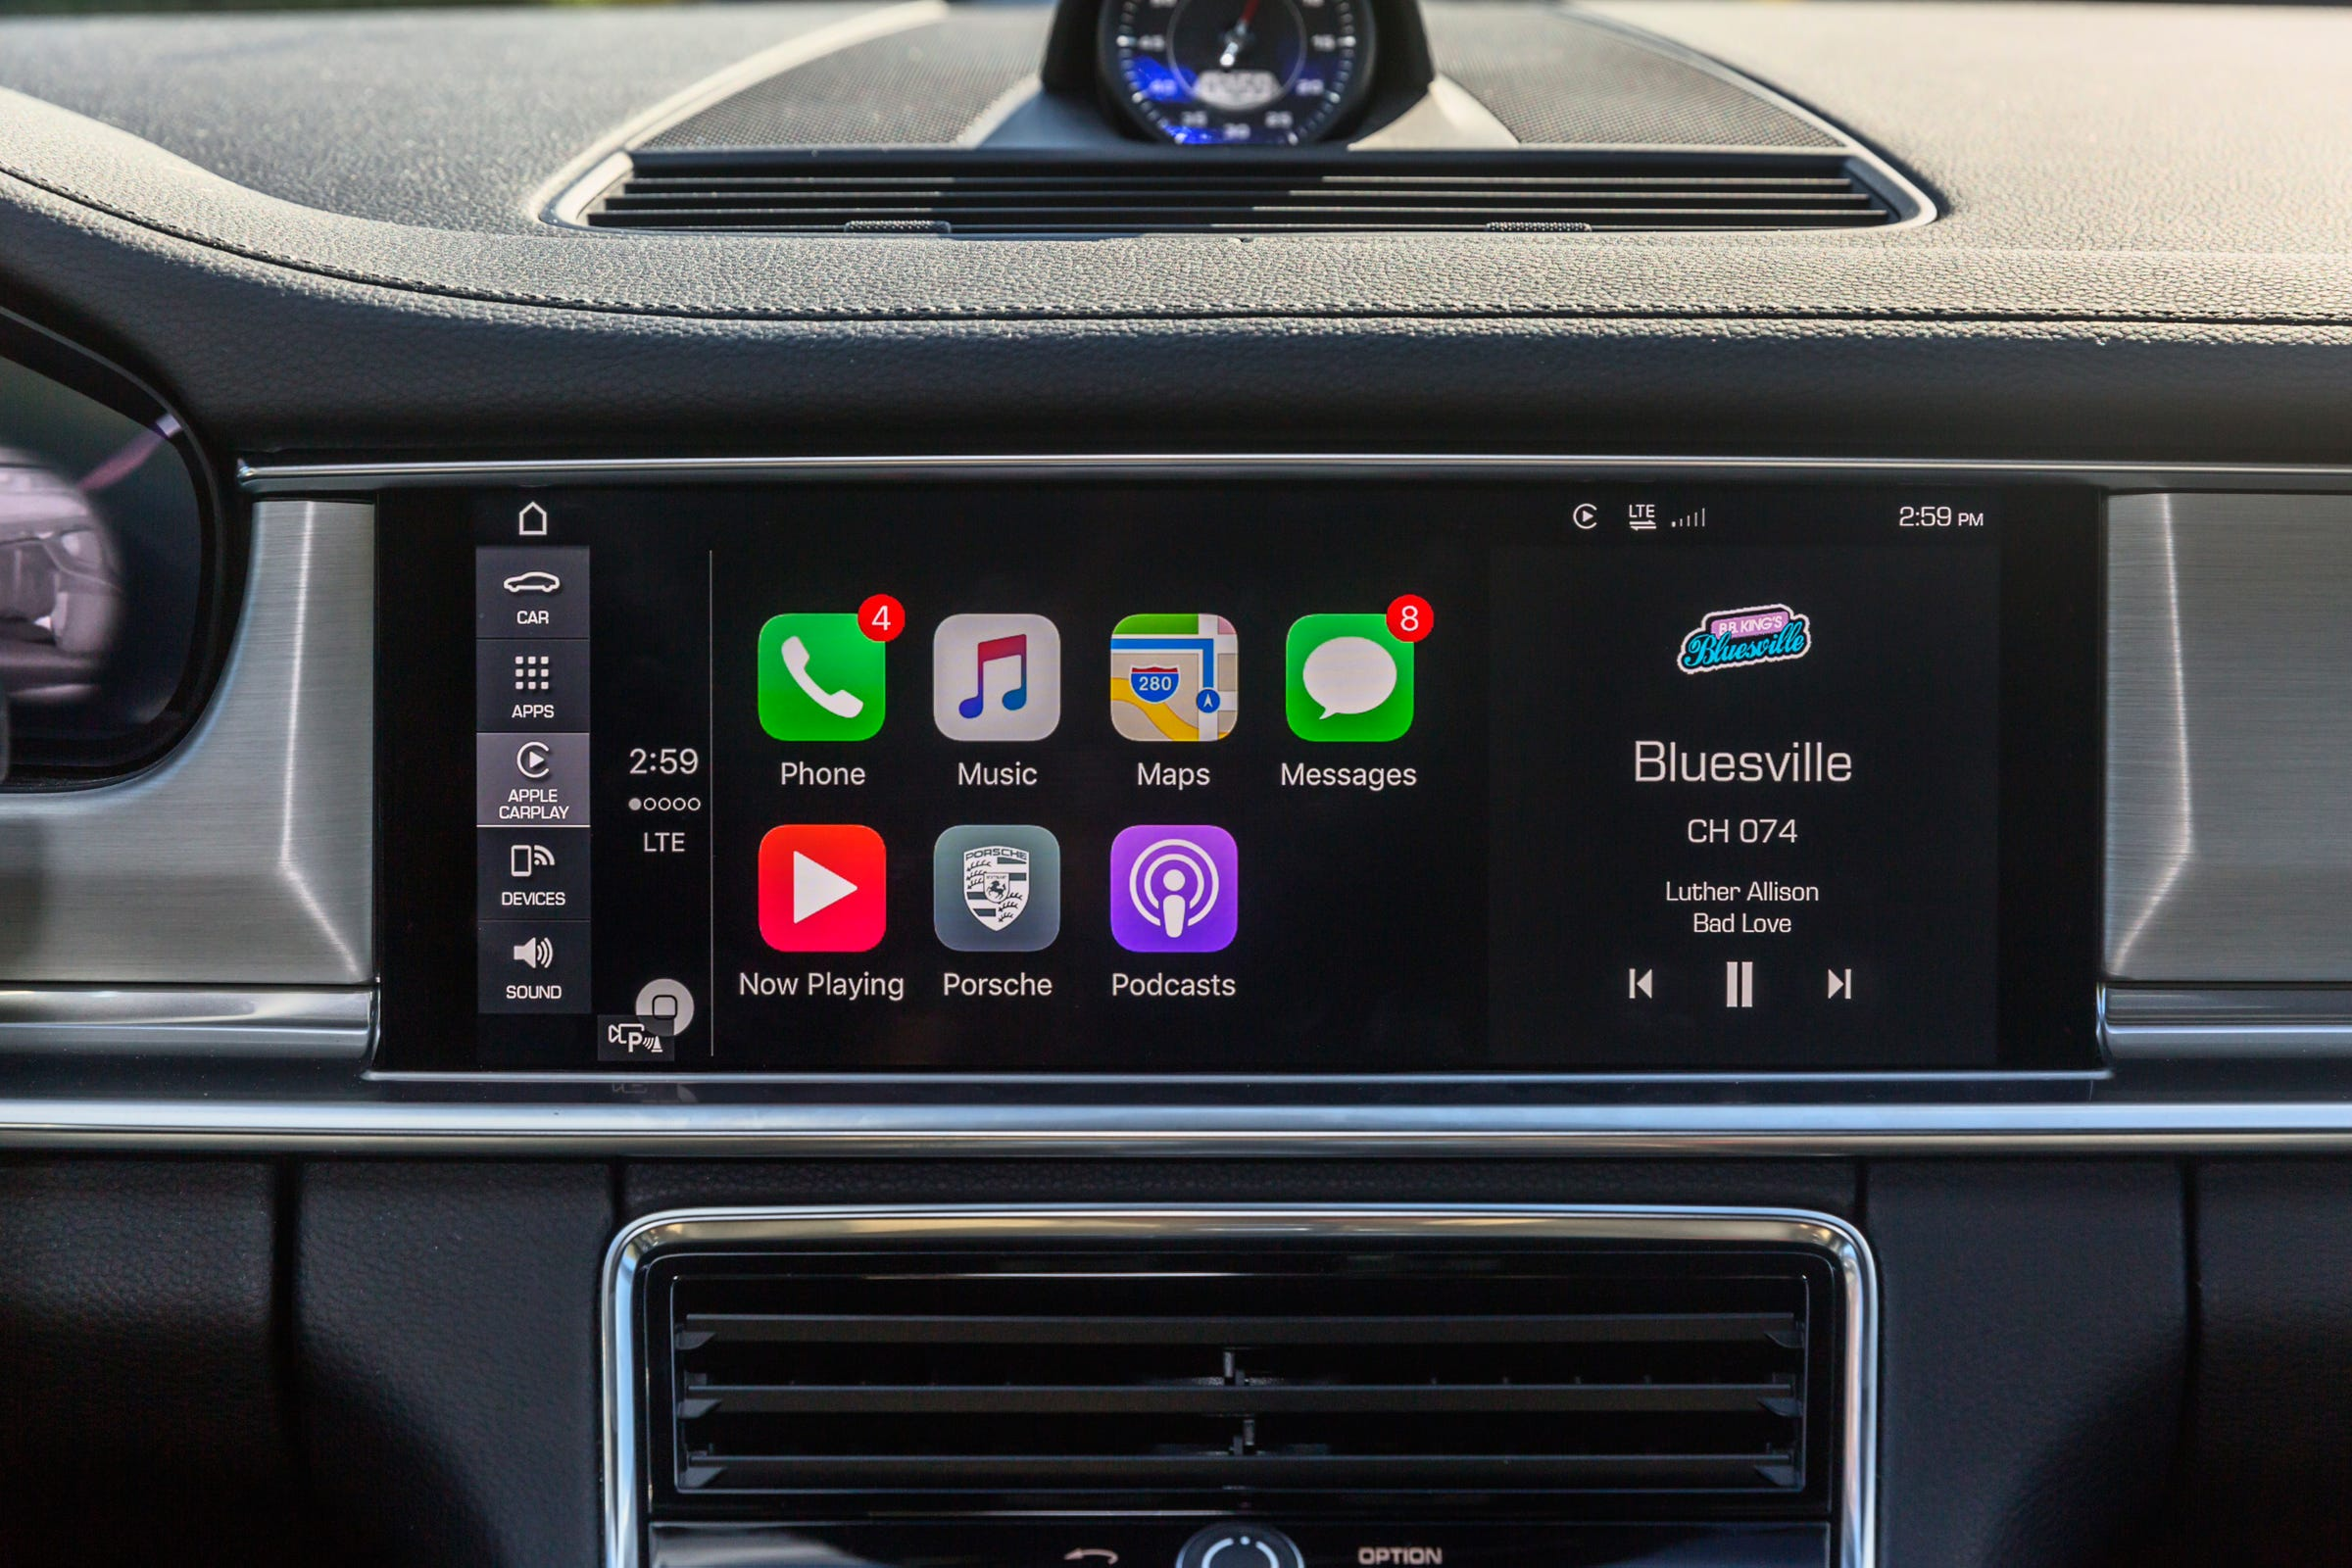 How 5G & IoT technologies are driving the connected smart vehicle industry